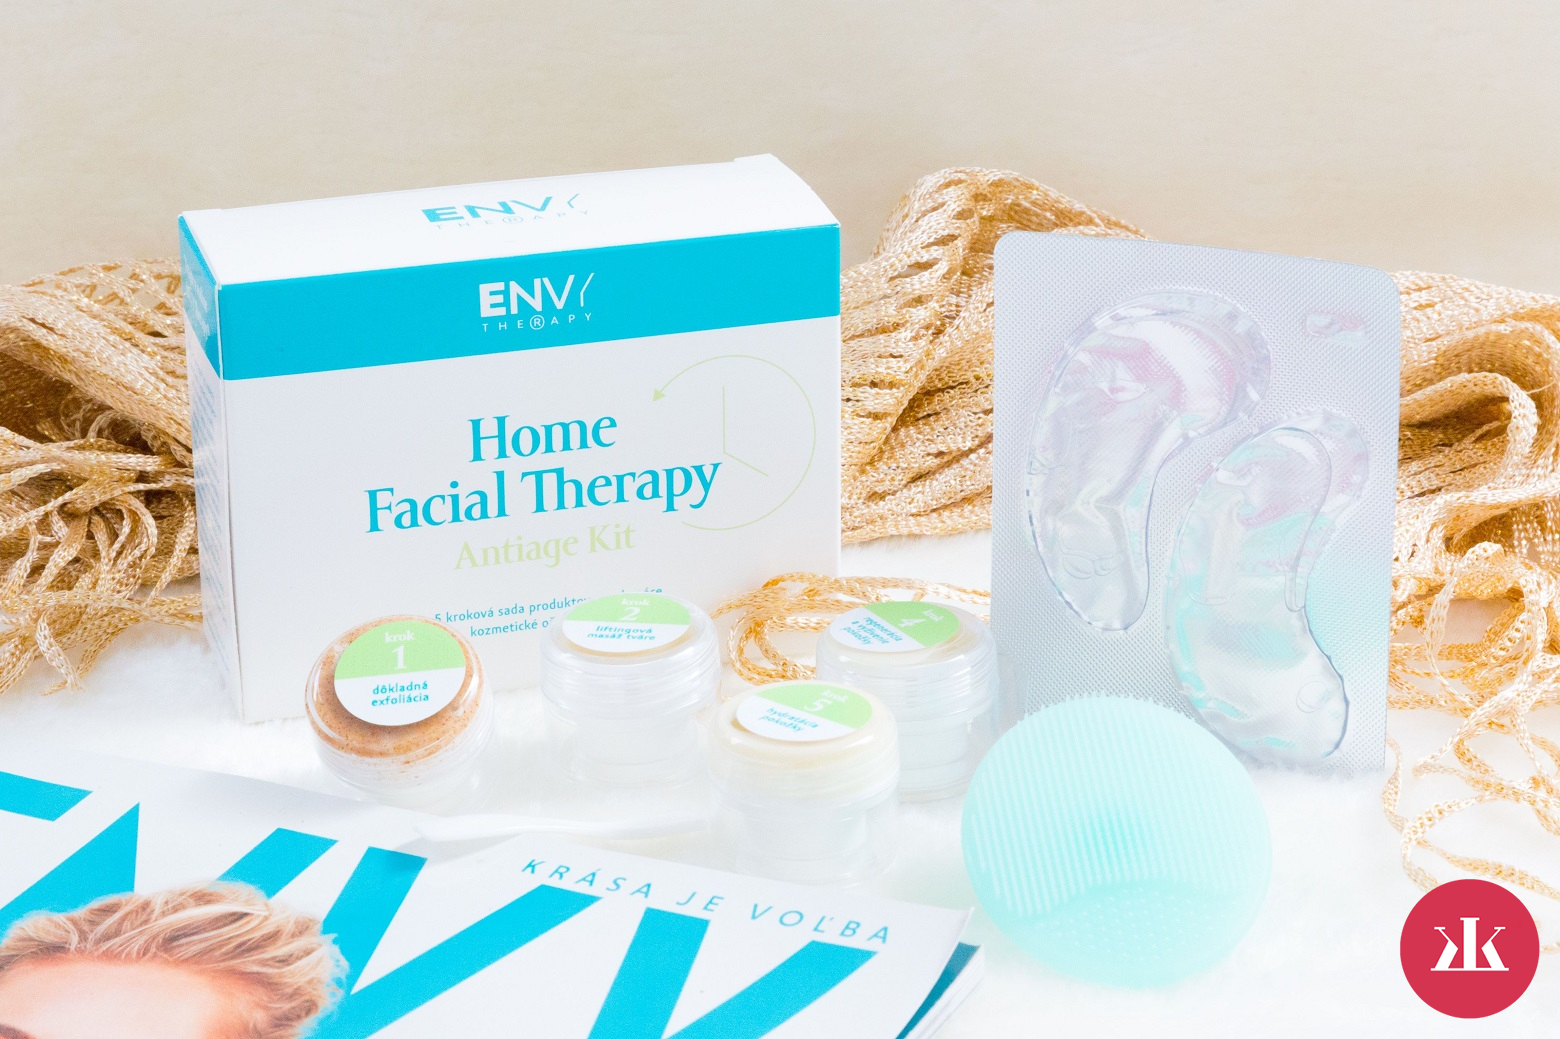 Home Facial Therapy